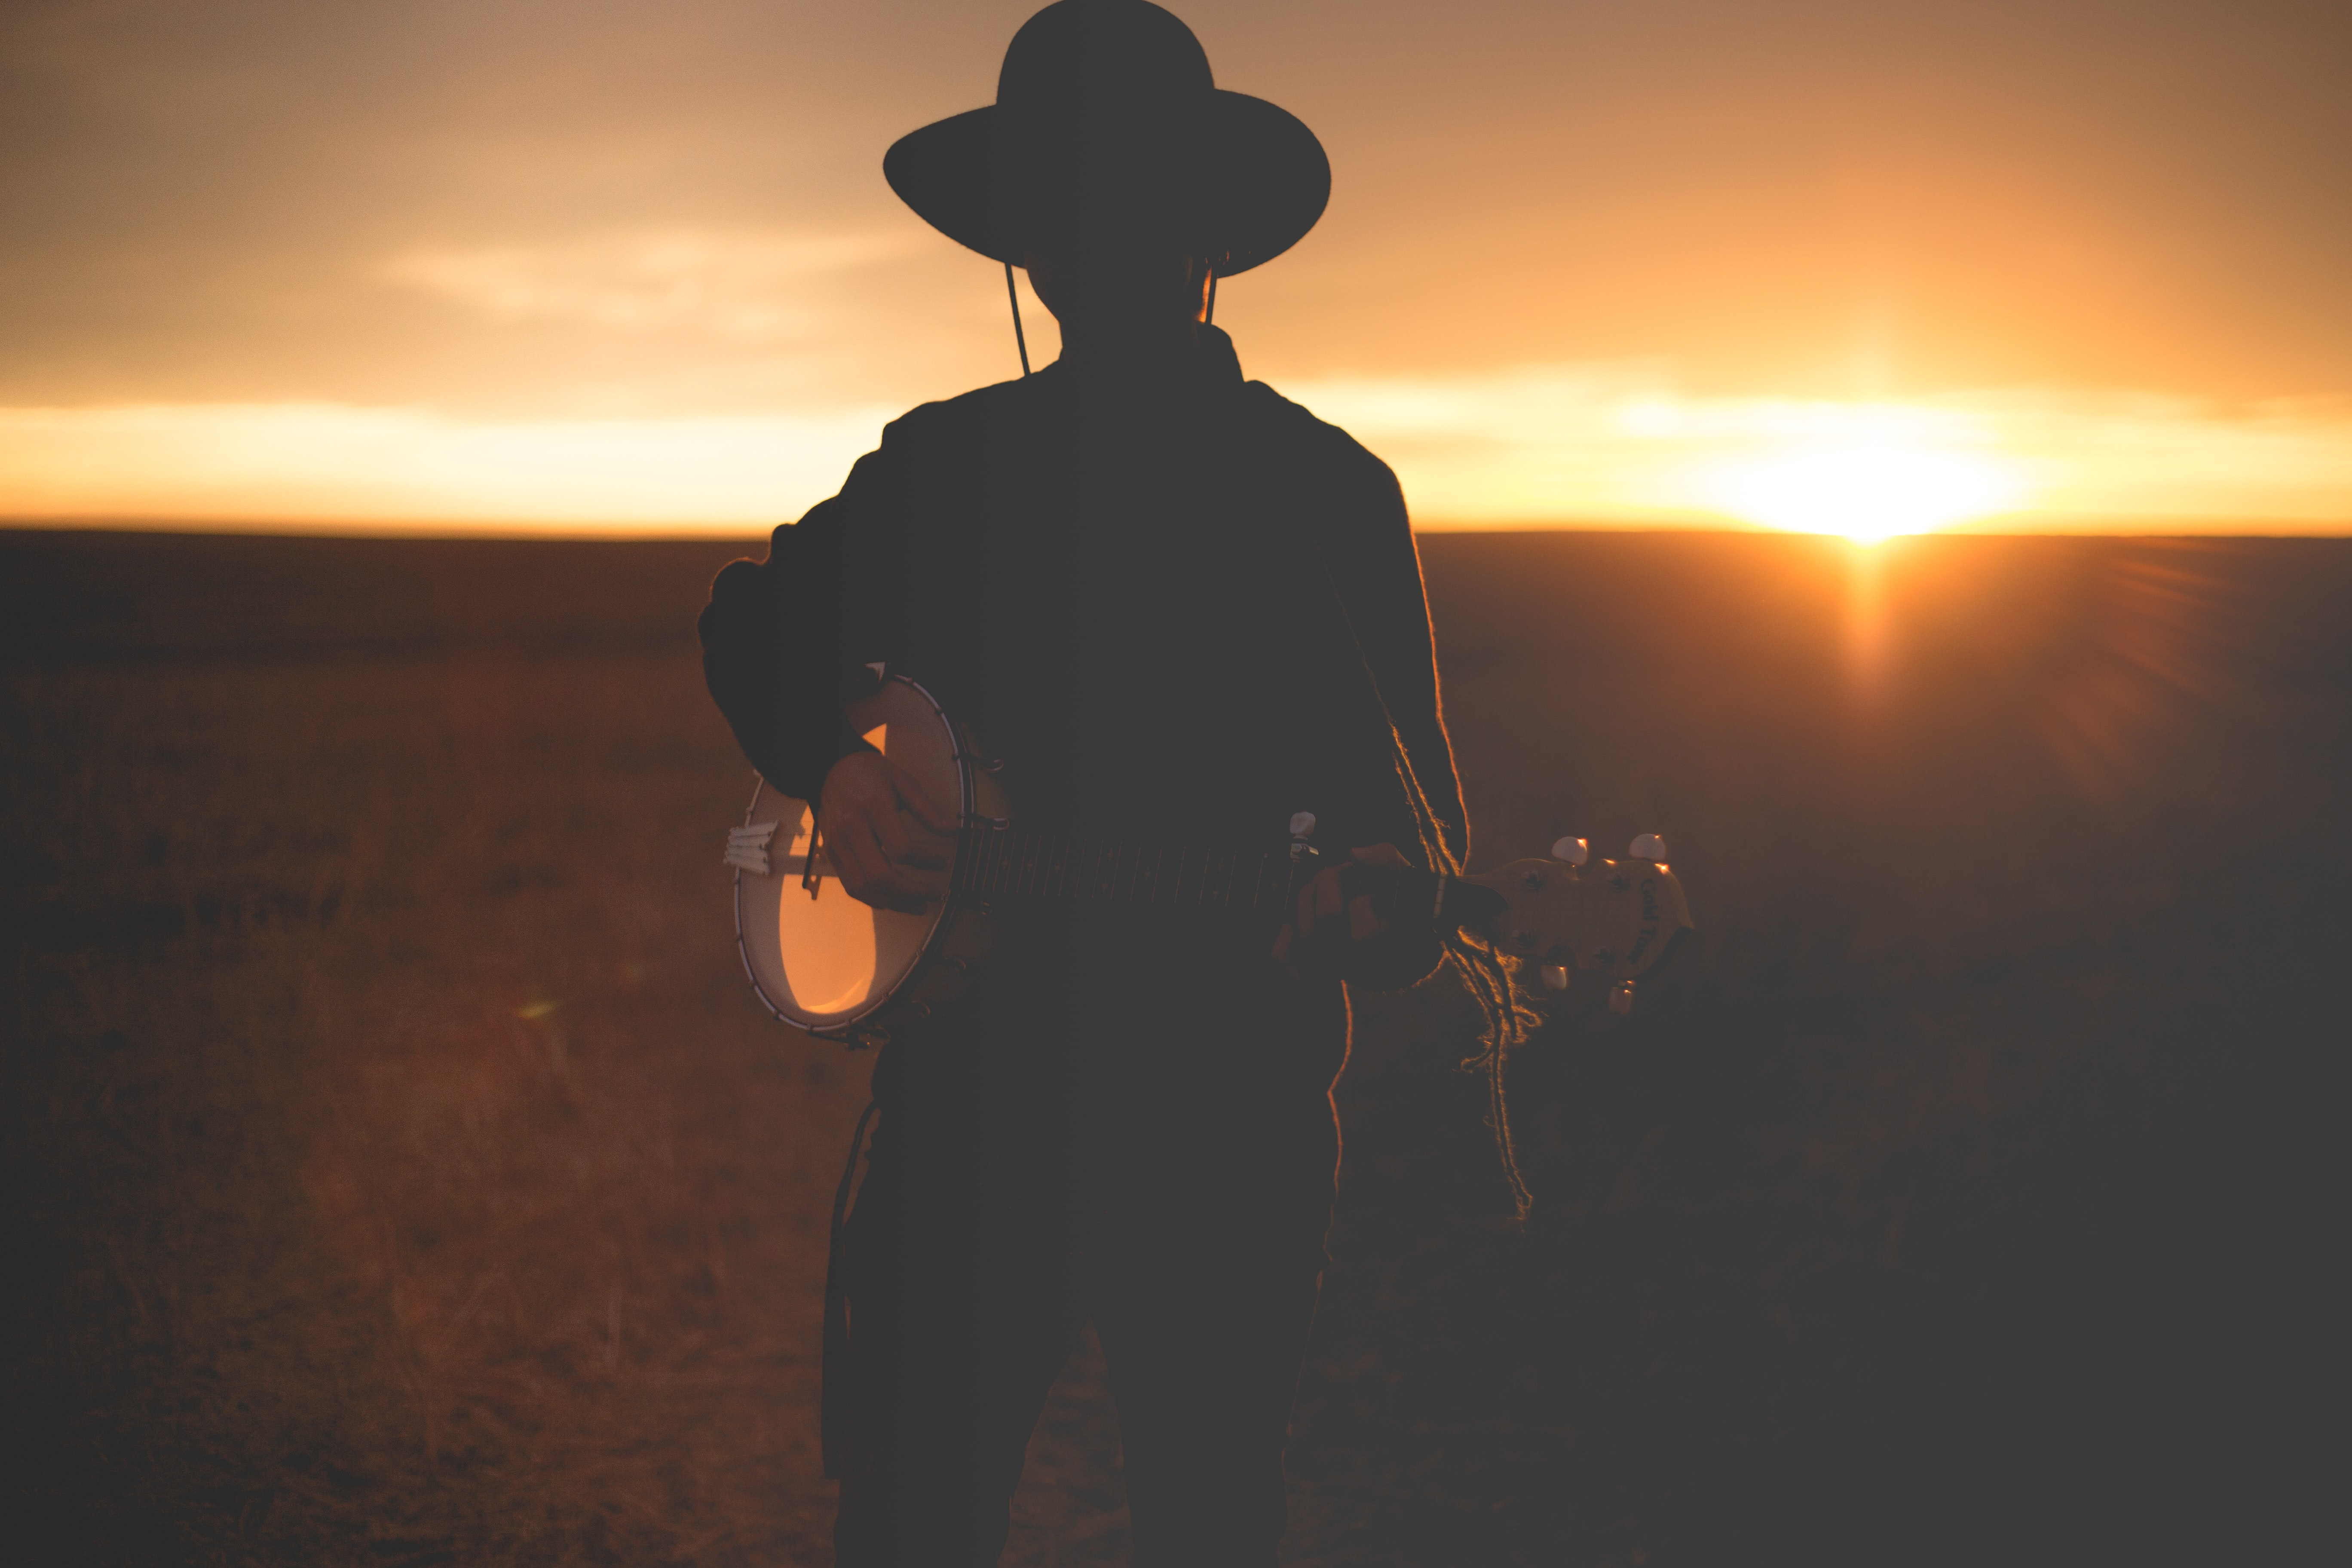 Silhouette of musician with hat playing banjo in field during sunset